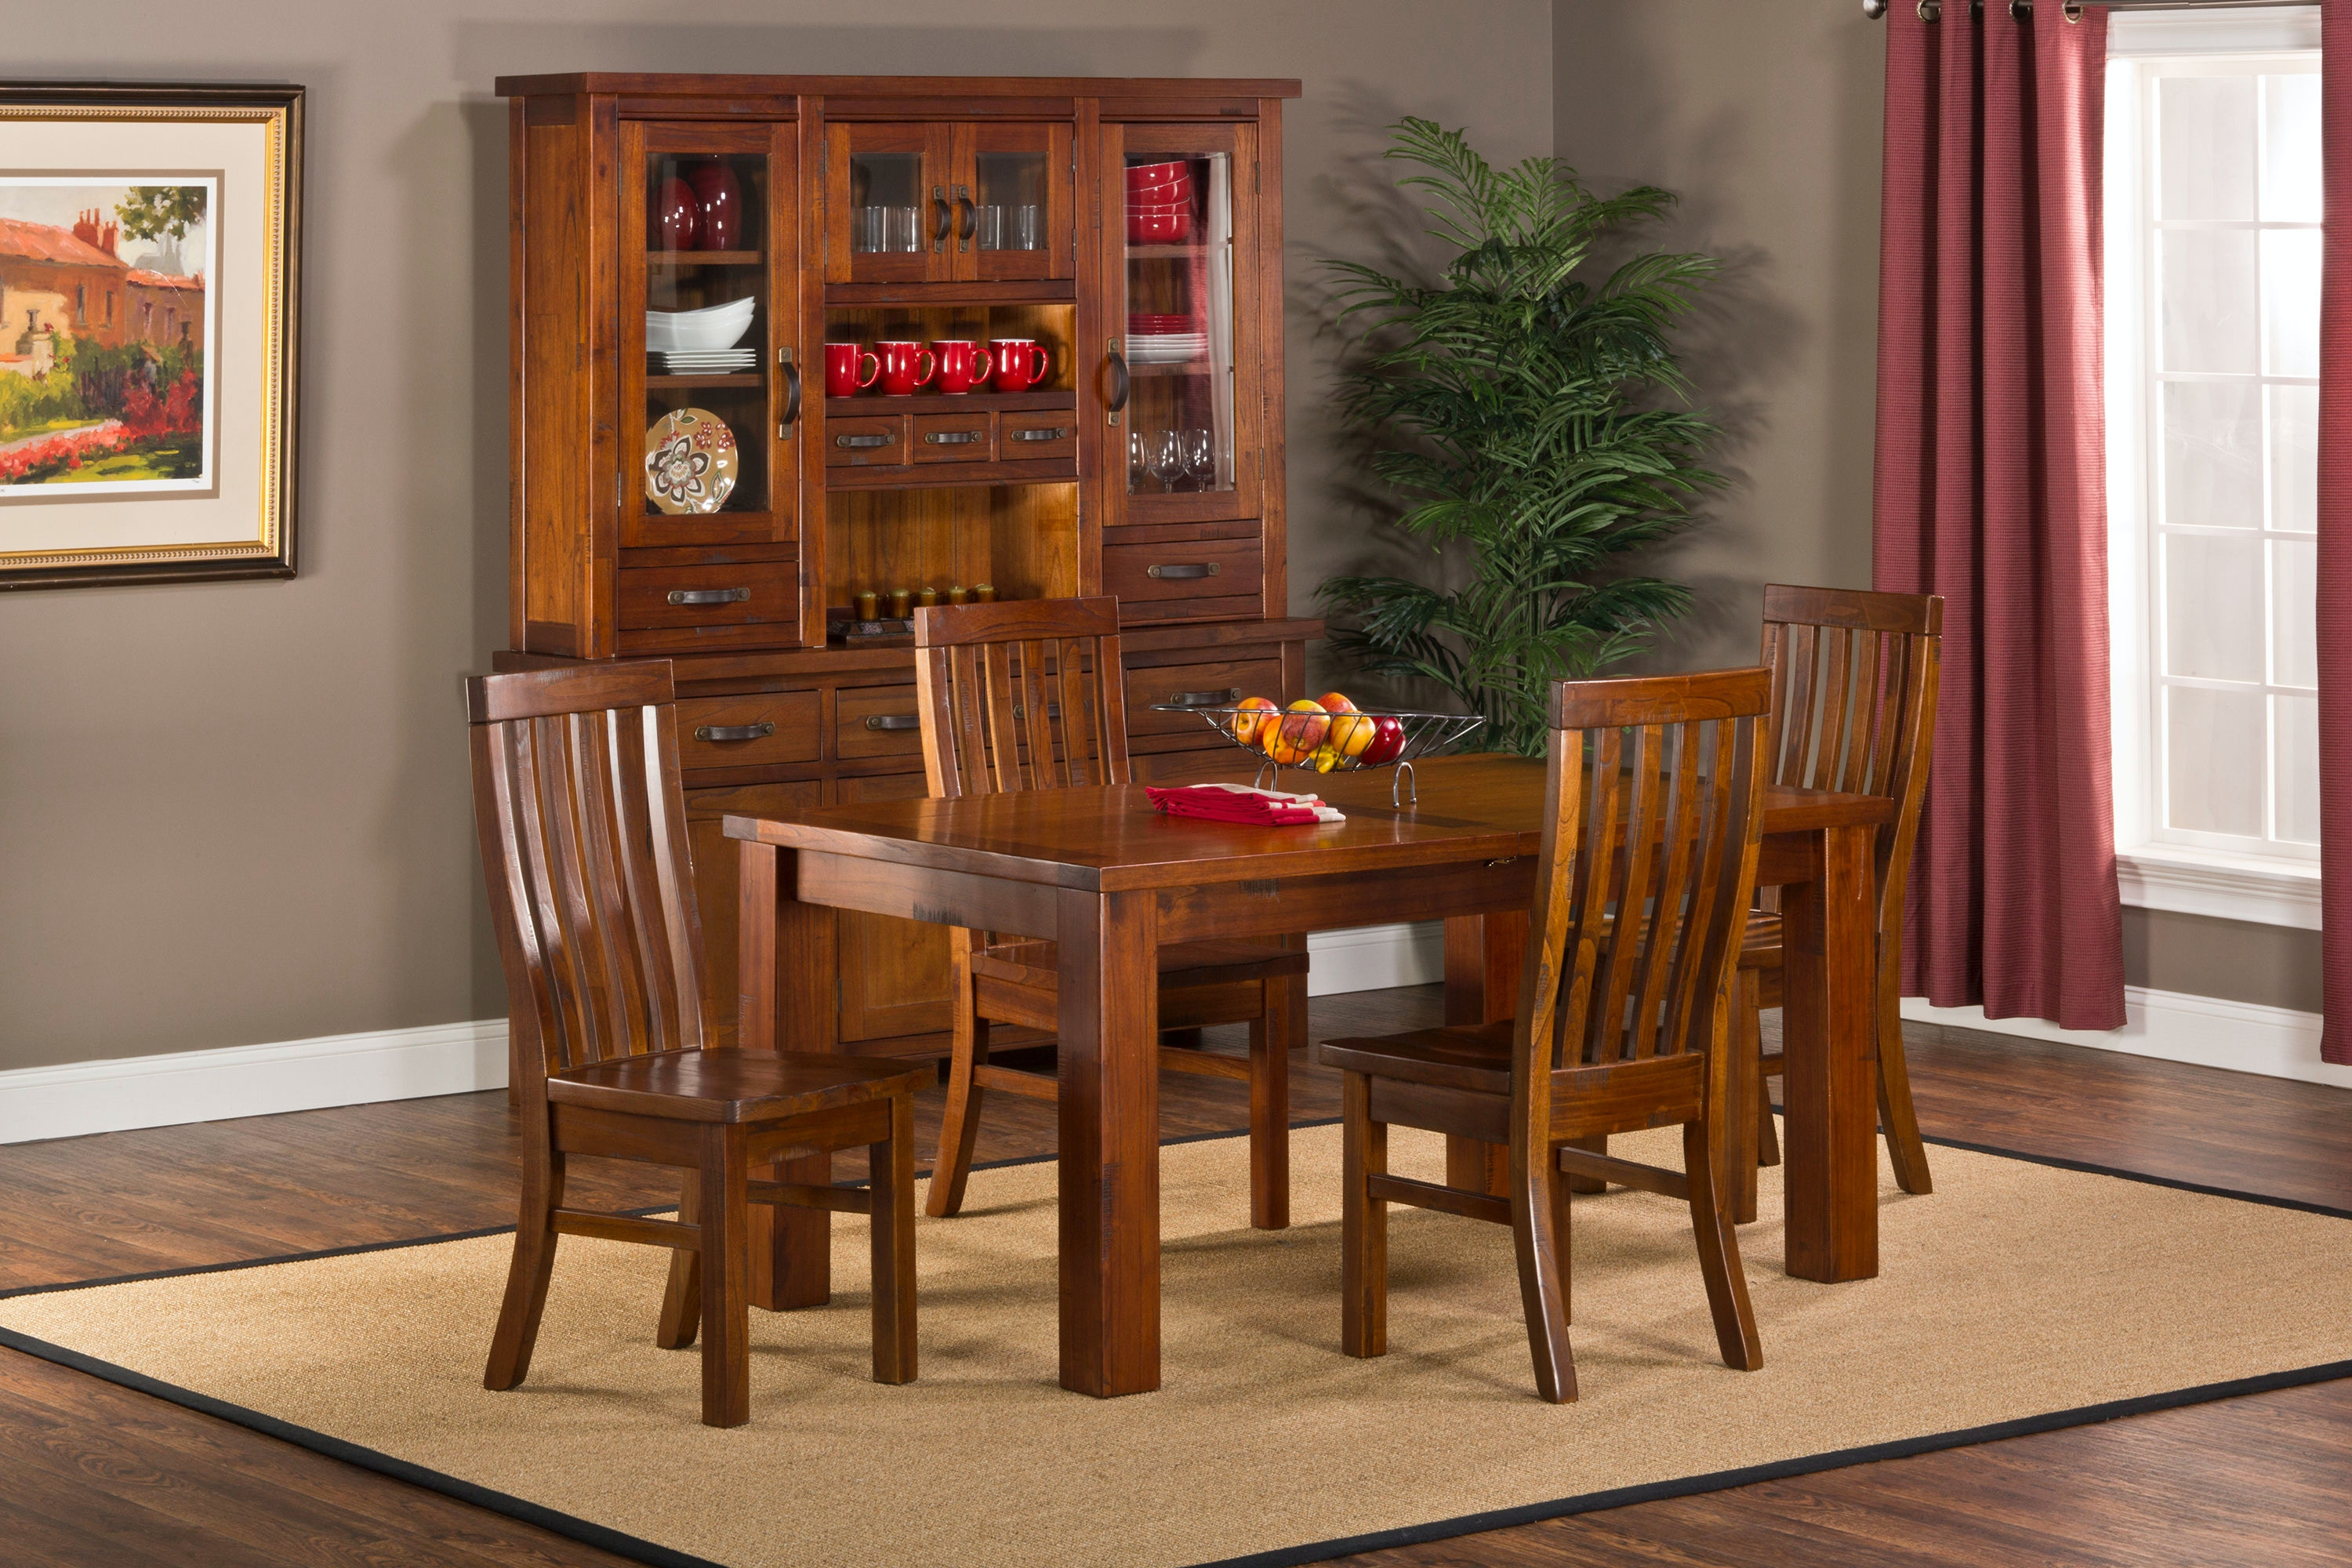 Hillsdale Furniture Dining Room Outback 5pc Dining Set  : 4321dtbec from www.kemperhomefurnishings.com size 1024 x 768 jpeg 95kB